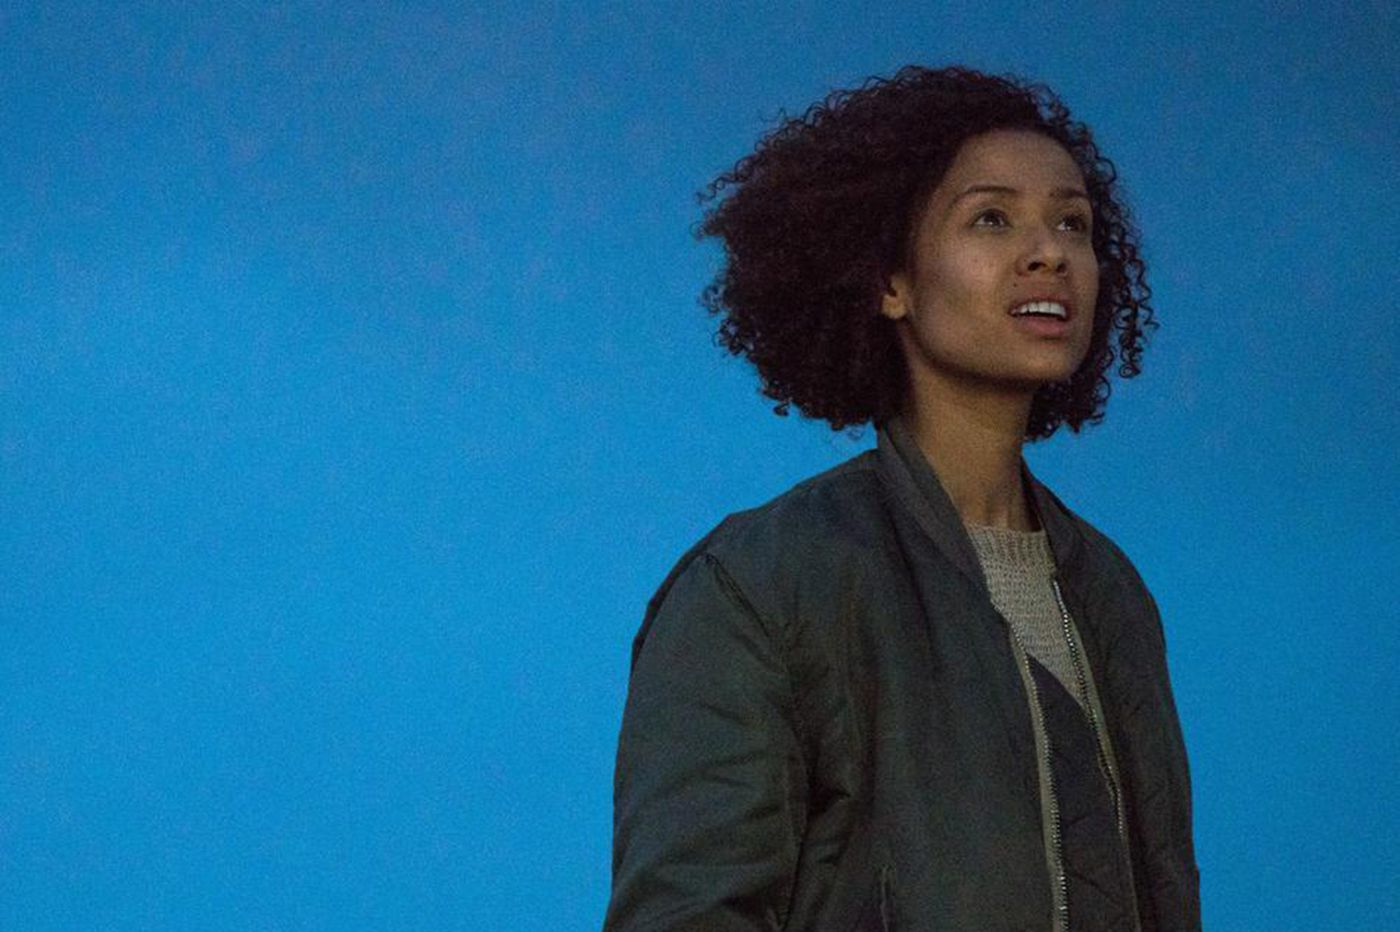 'Fast Color' is a super hero origin story that's ultimately less than earth-shaking | Movie review